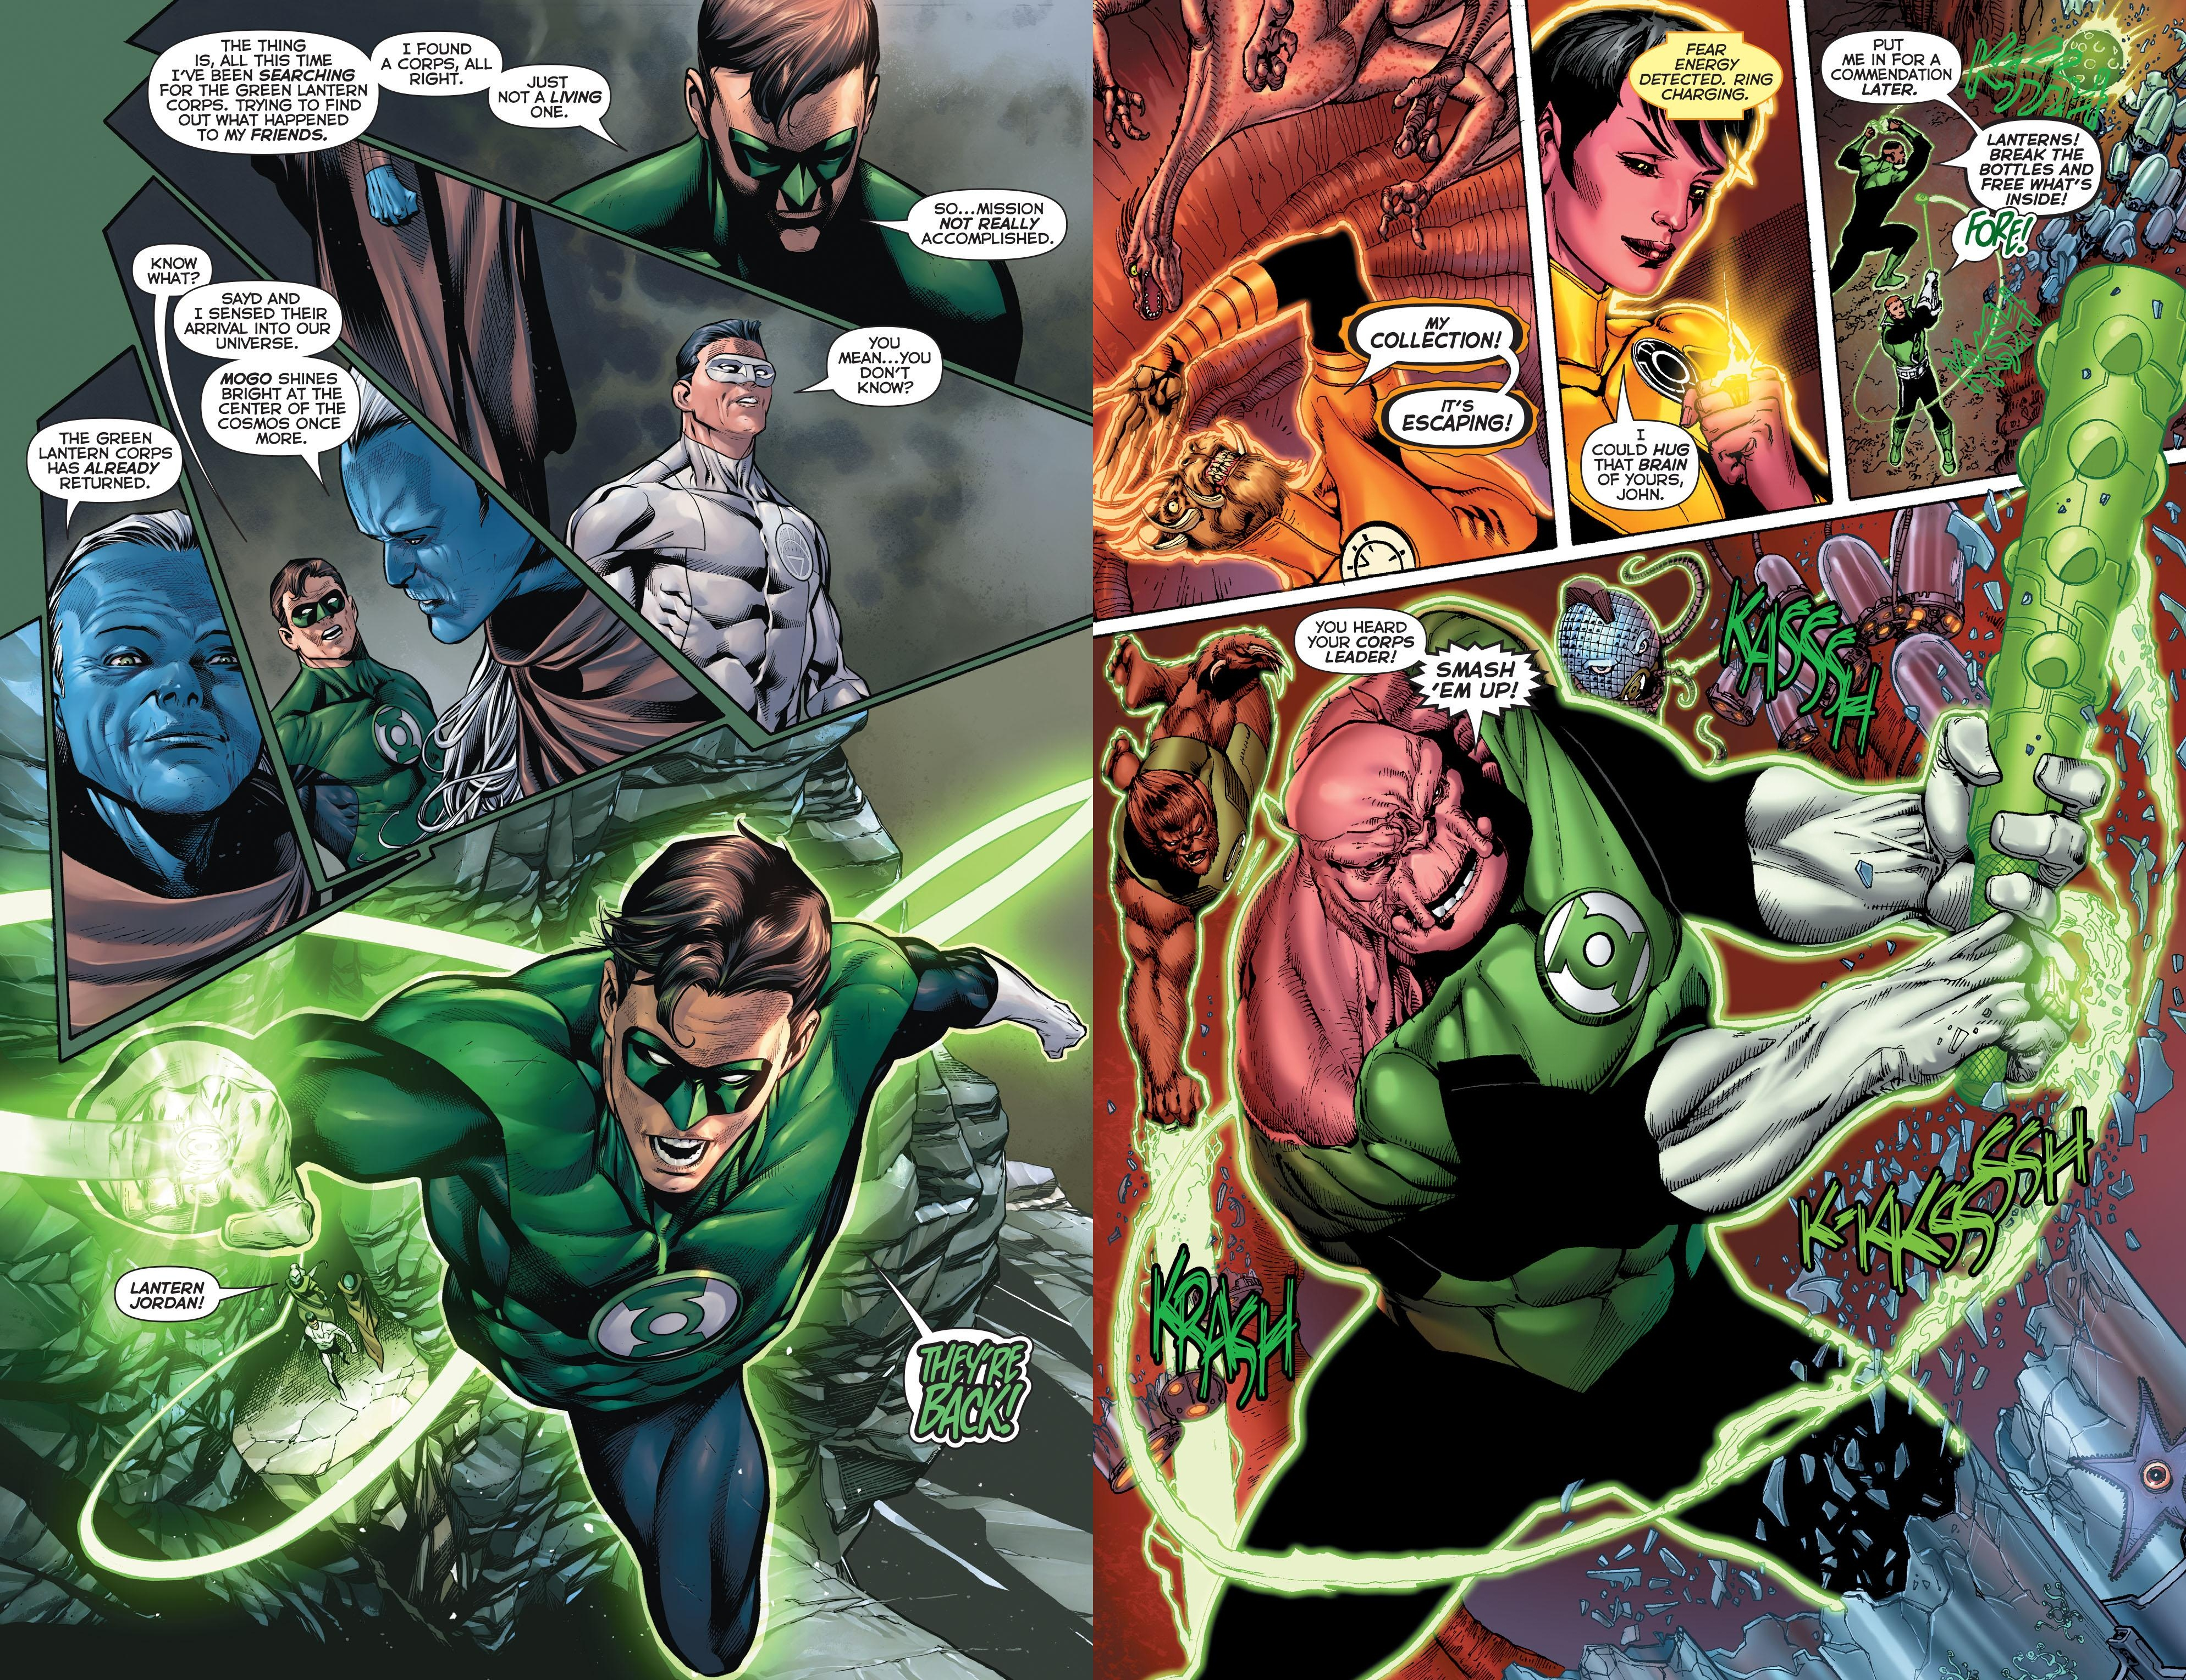 Hal Jordan and the Green Lantern Corps - Bottled Light review